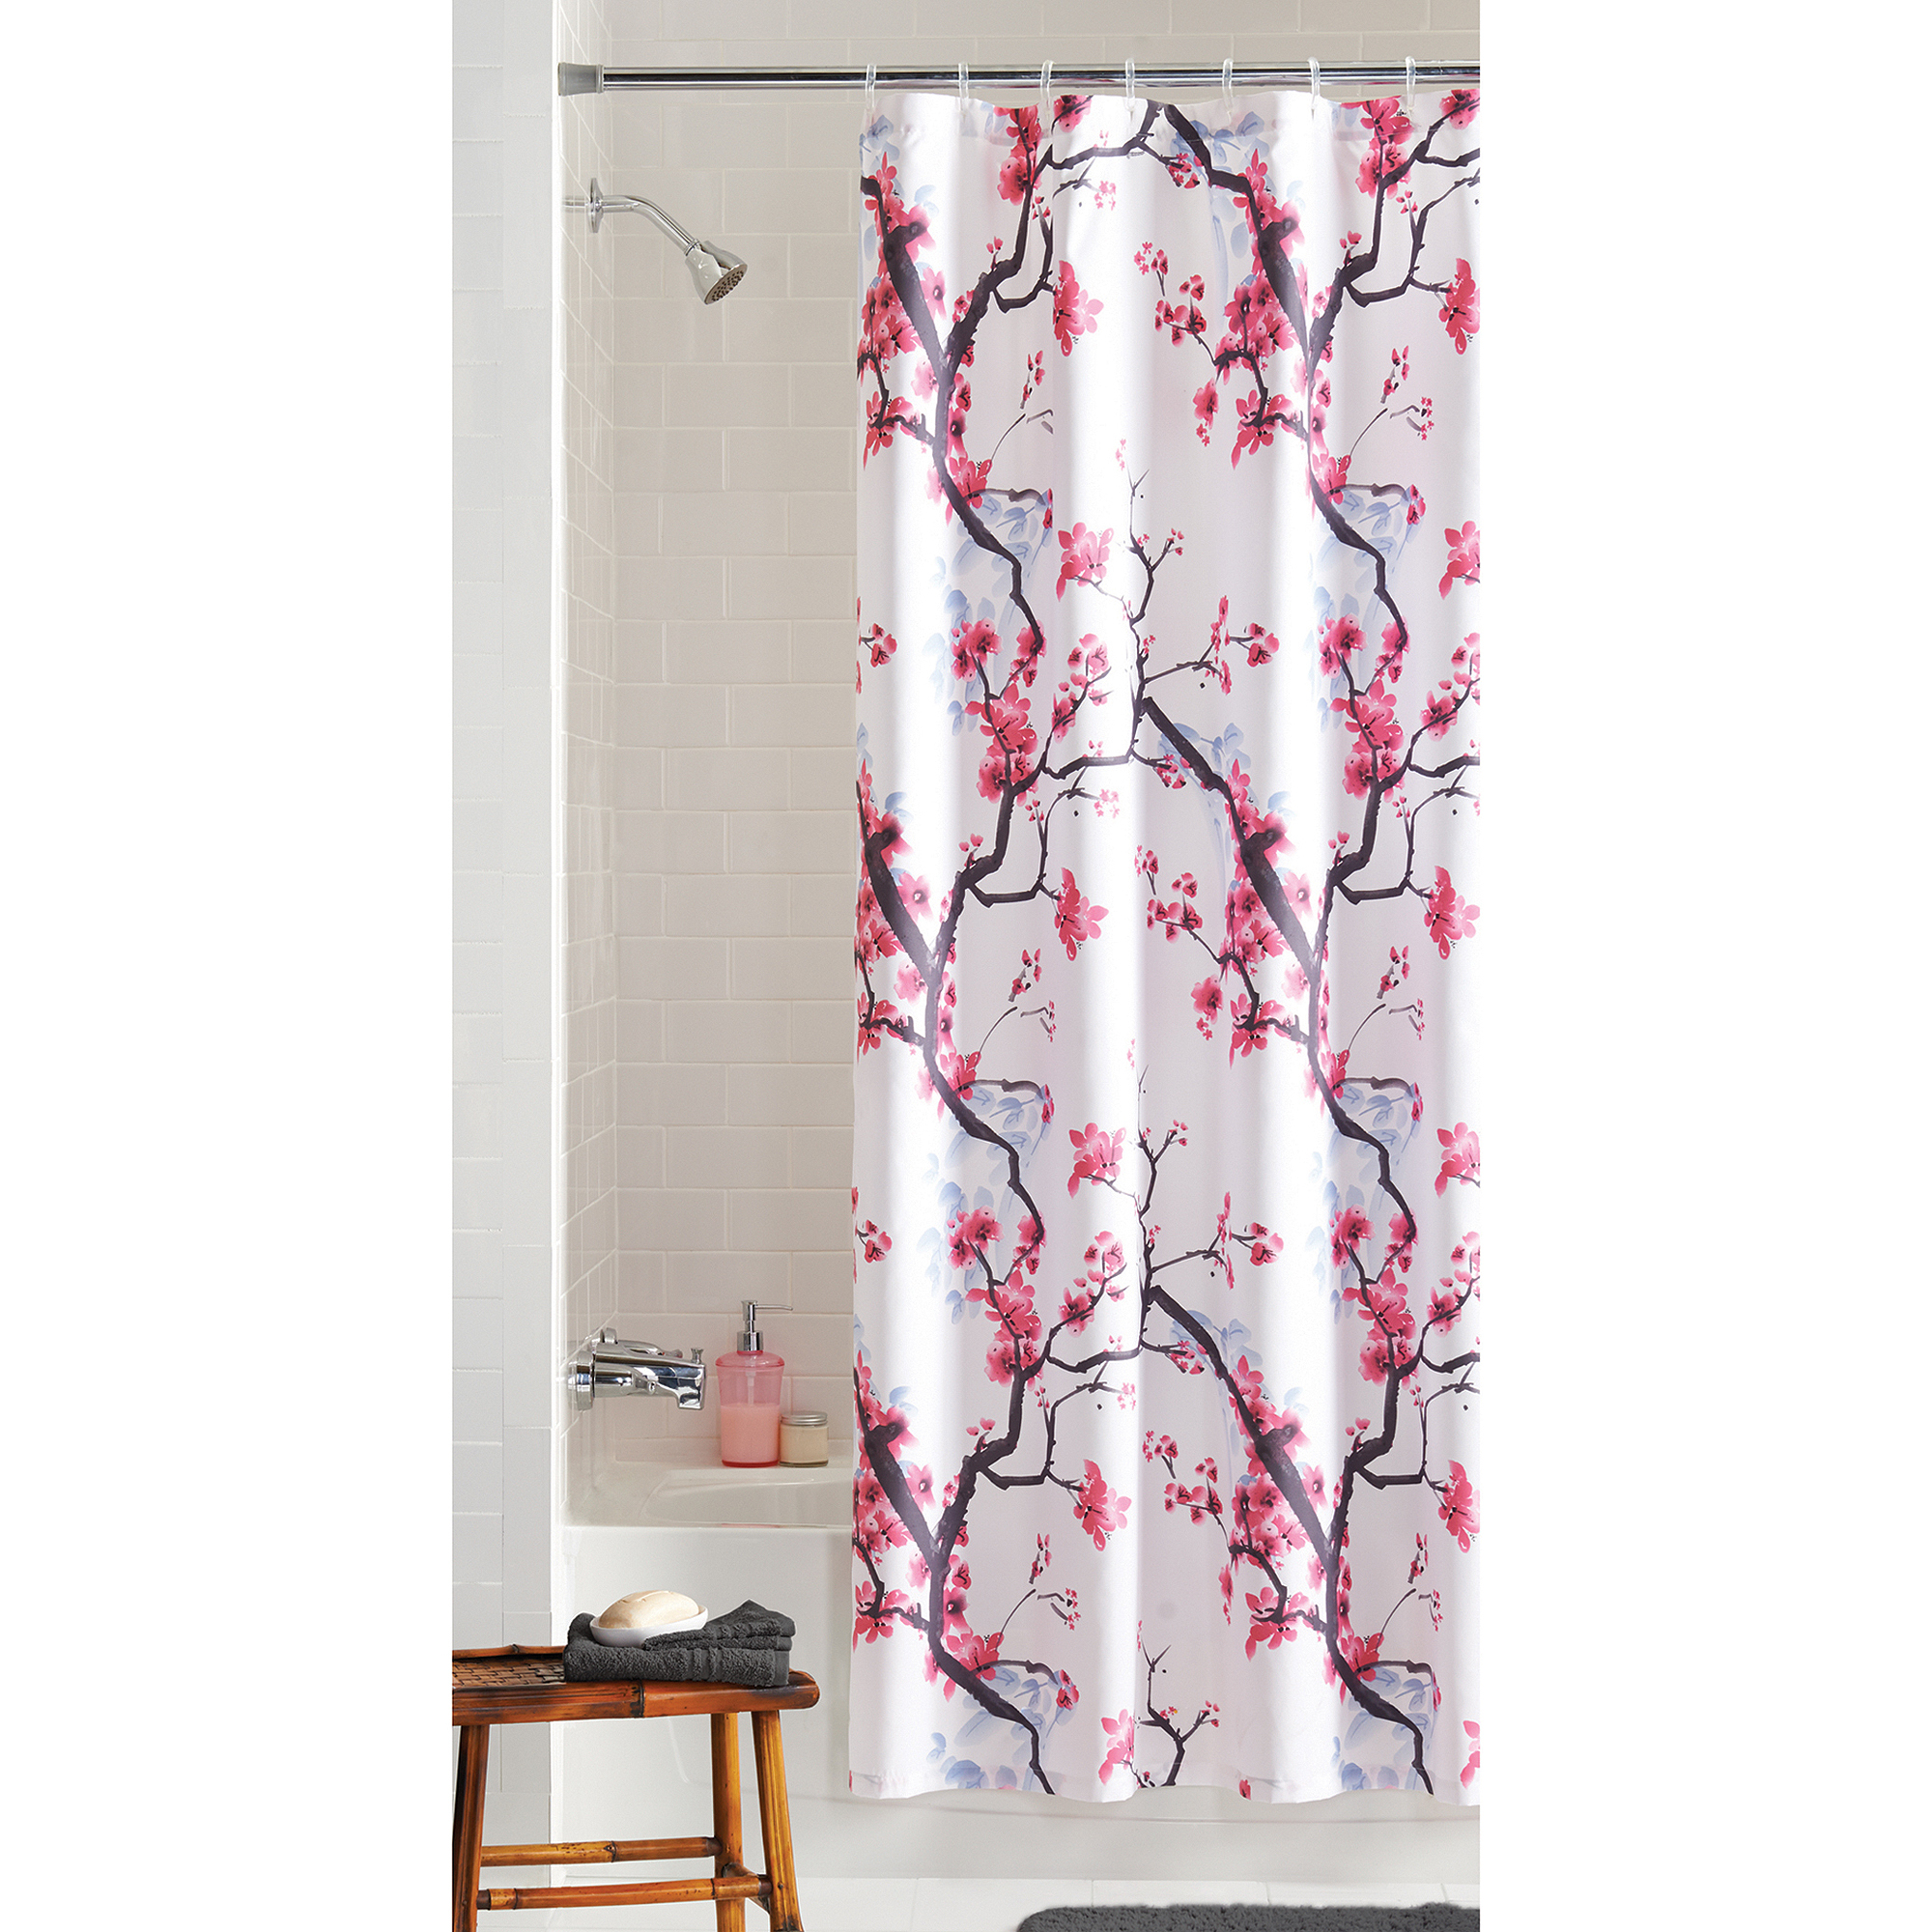 Mainstays Shower Curtains Walmart throughout proportions 2000 X 2000